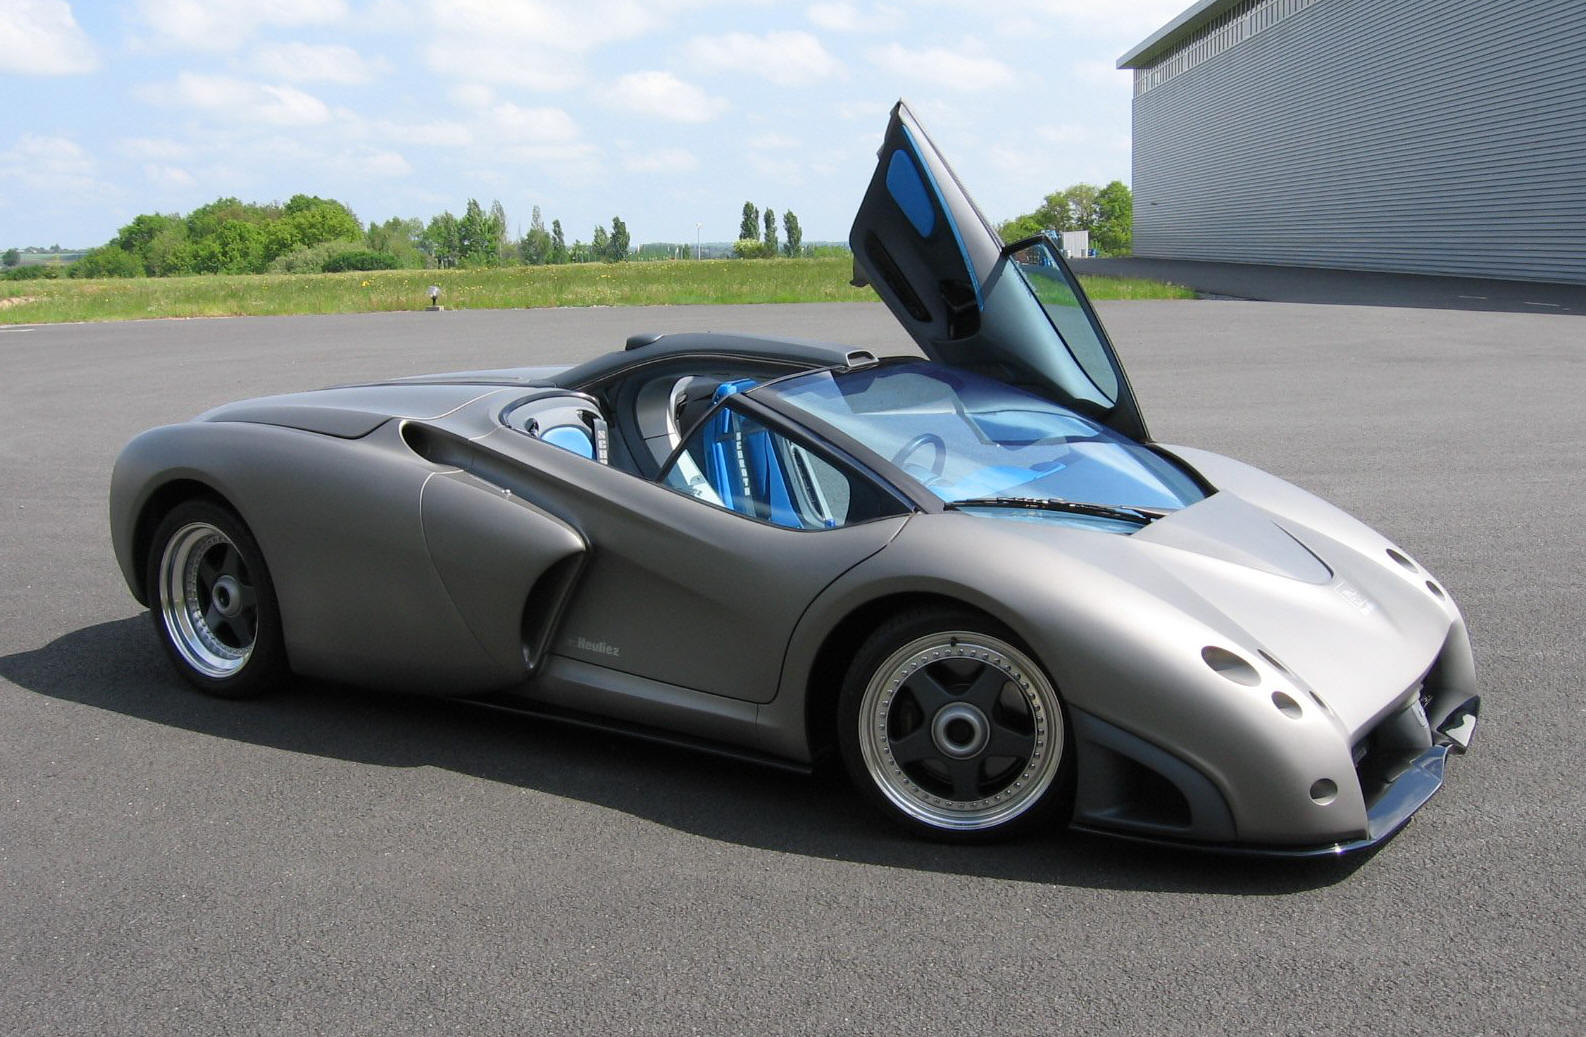 Lamborghini Pregunta V12 Roadster Prototype At Autodrome Paris